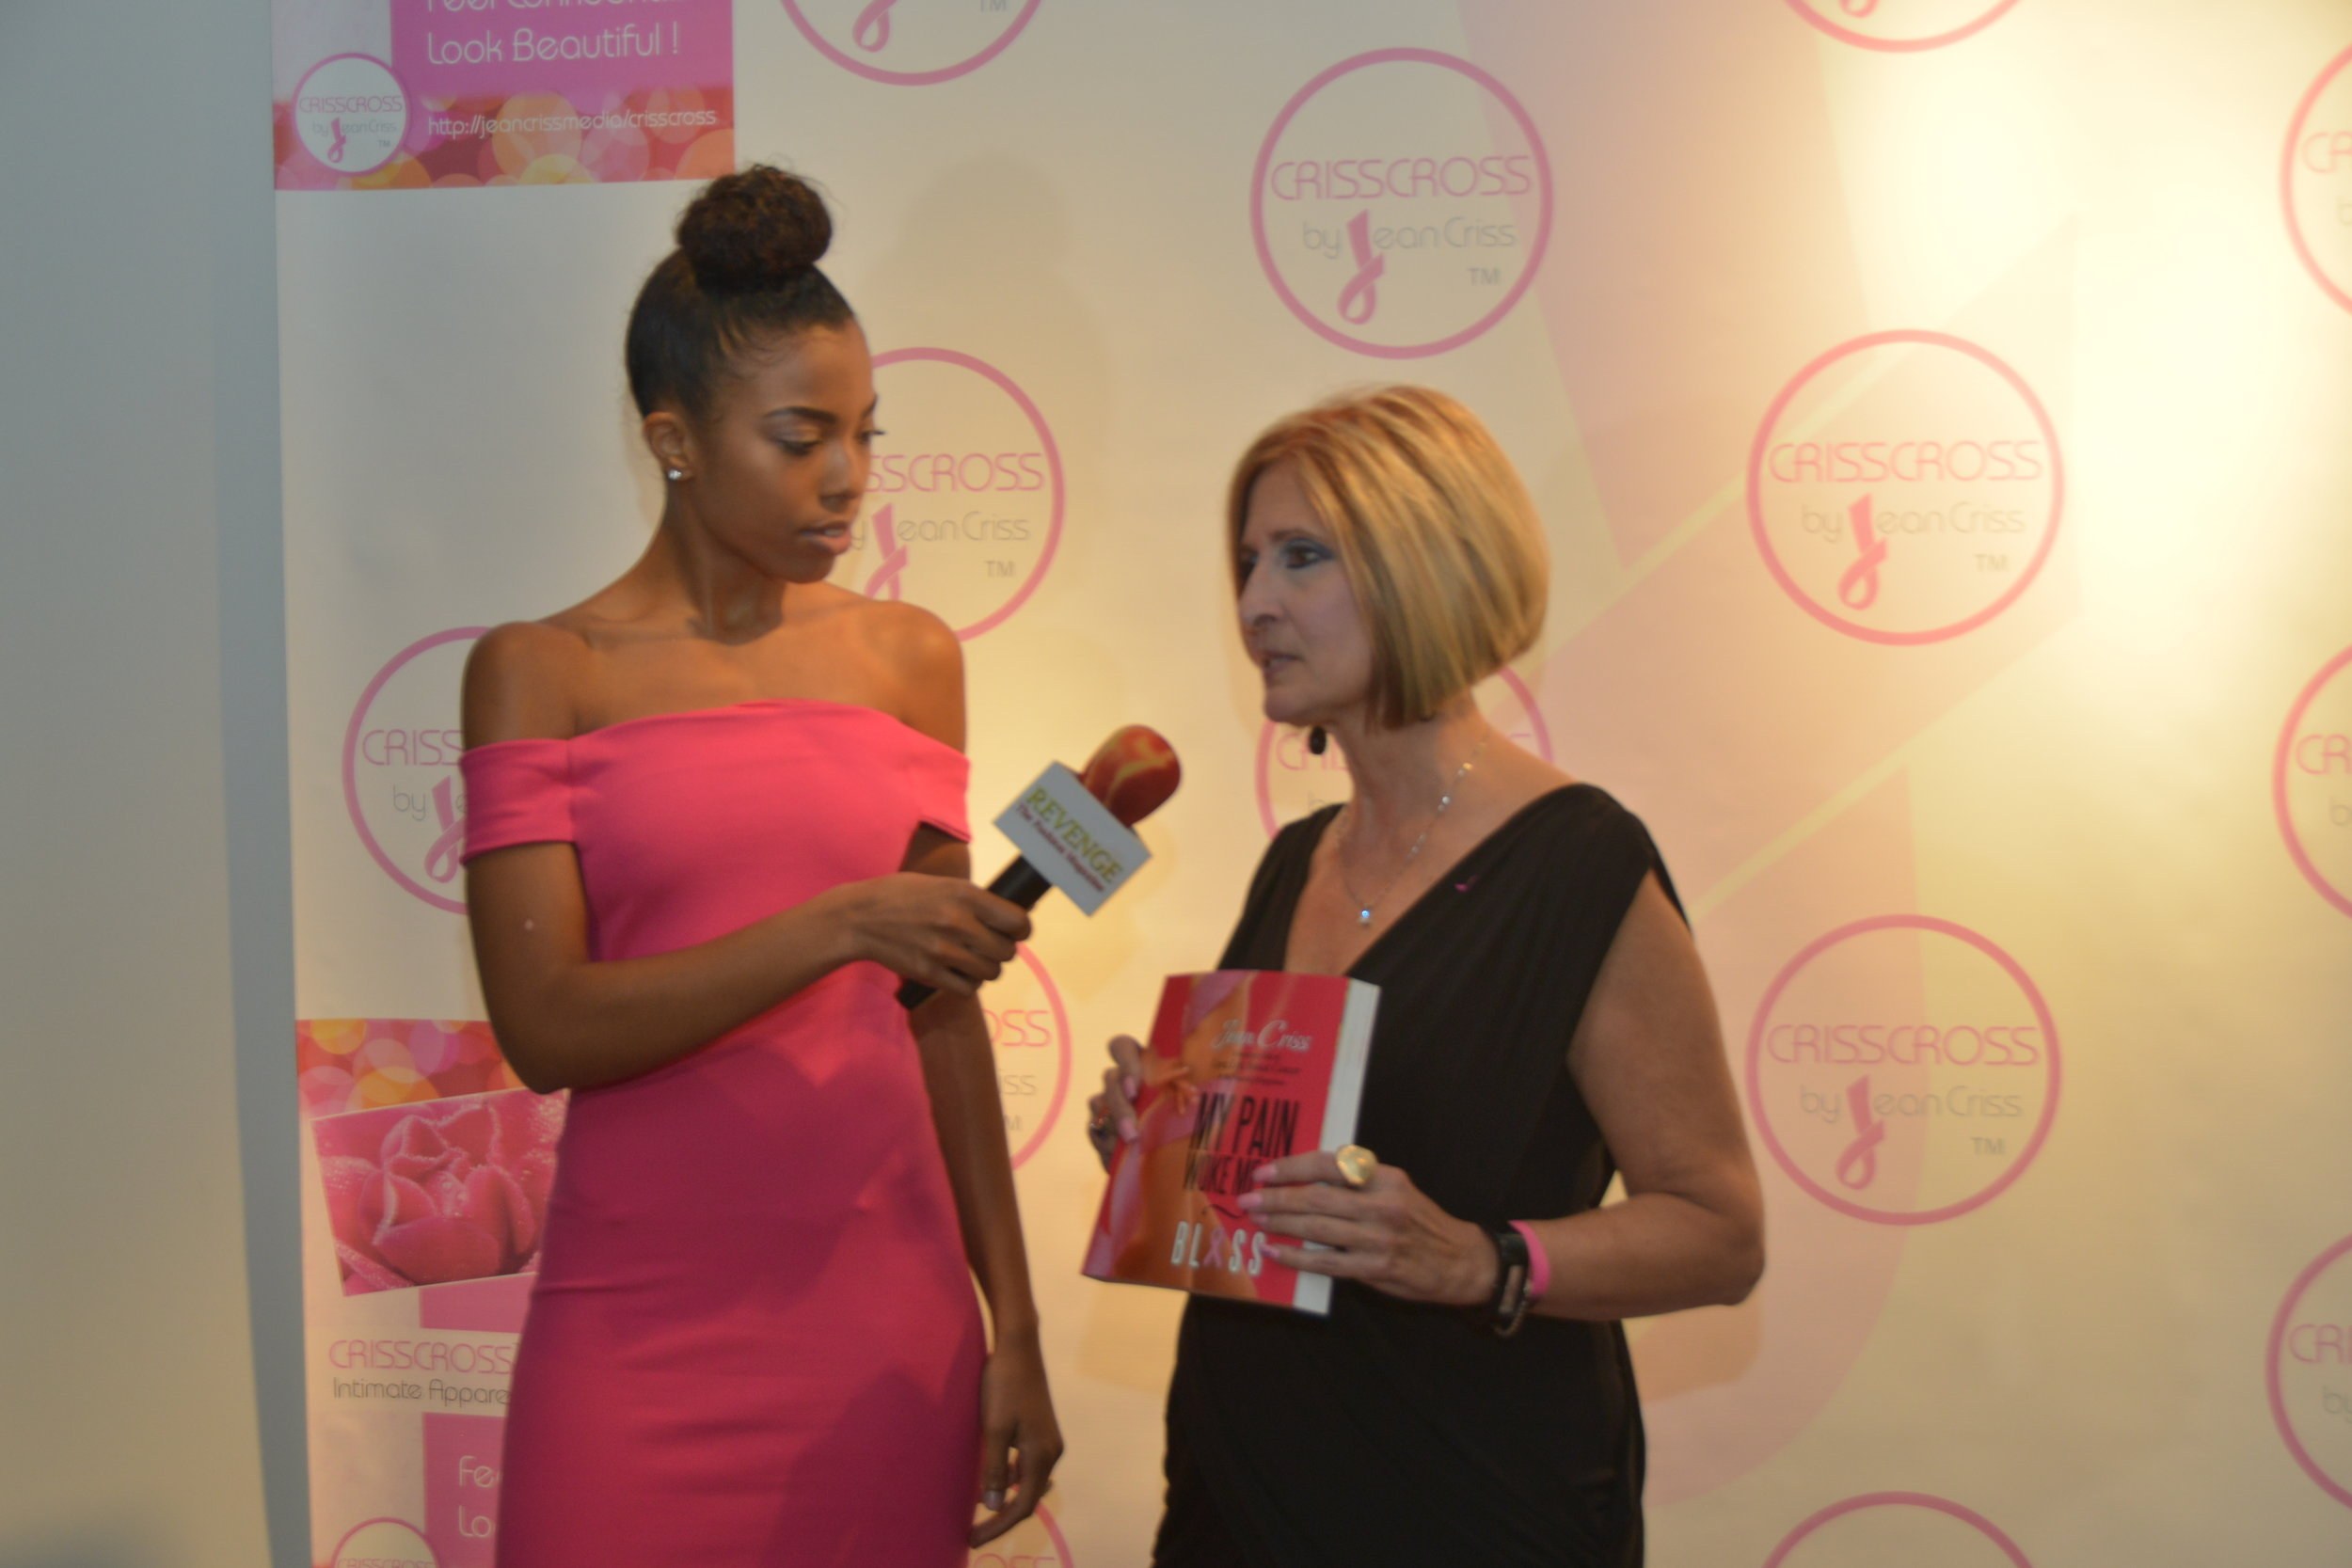 Interview w/Revenge Magazine and Founder/CRISSCROSS & Author, Jean Criss:  My Pain Woke Me Up: BLISS